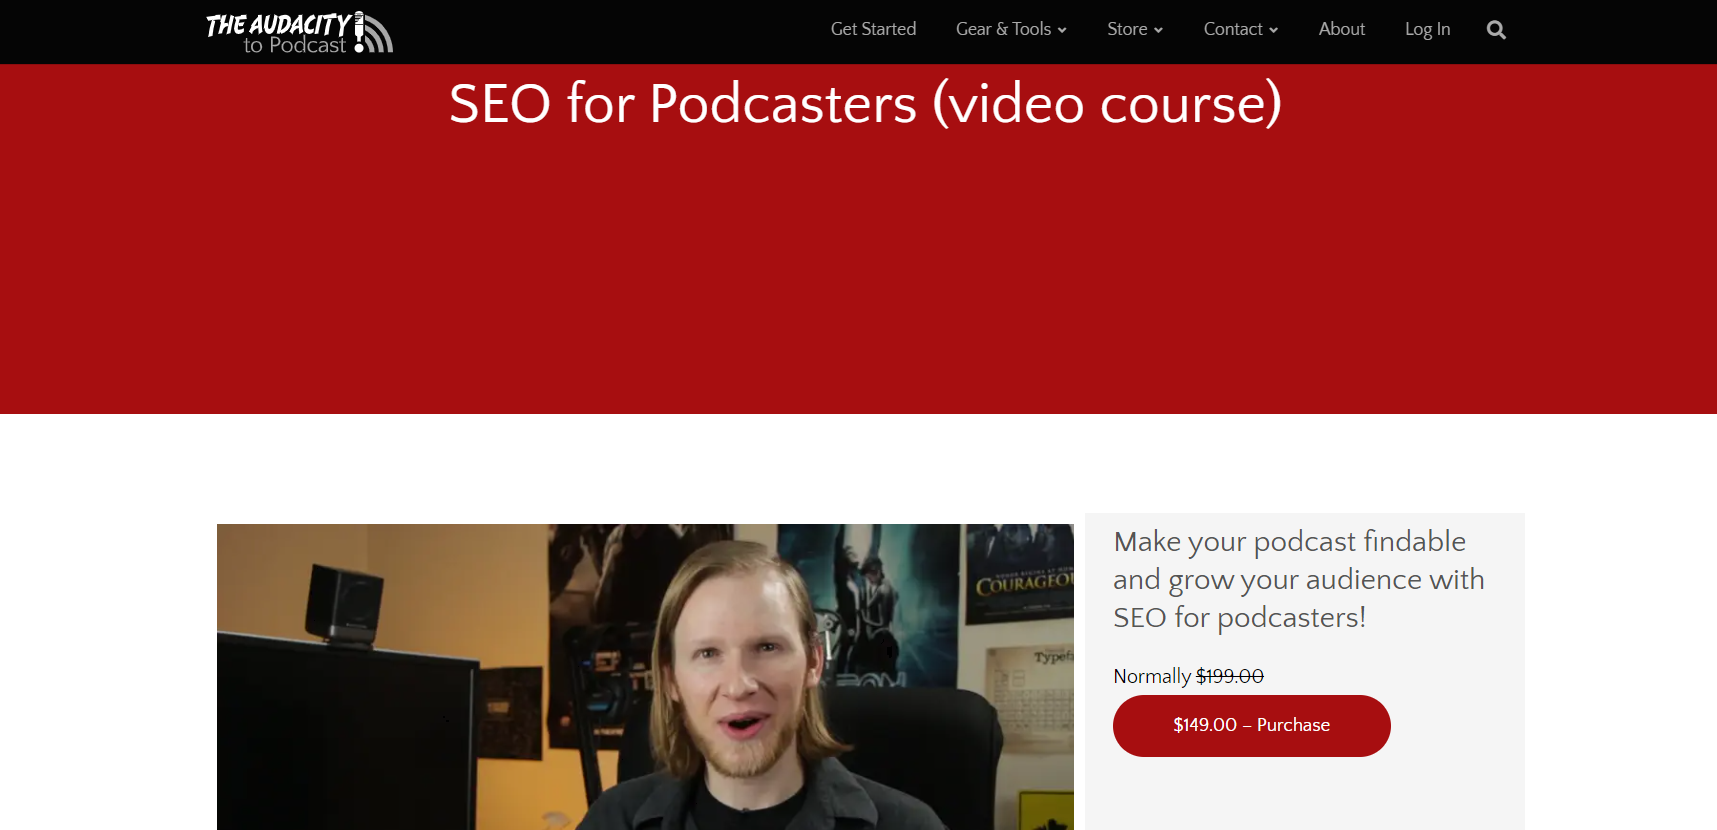 SEO for podcasters on website